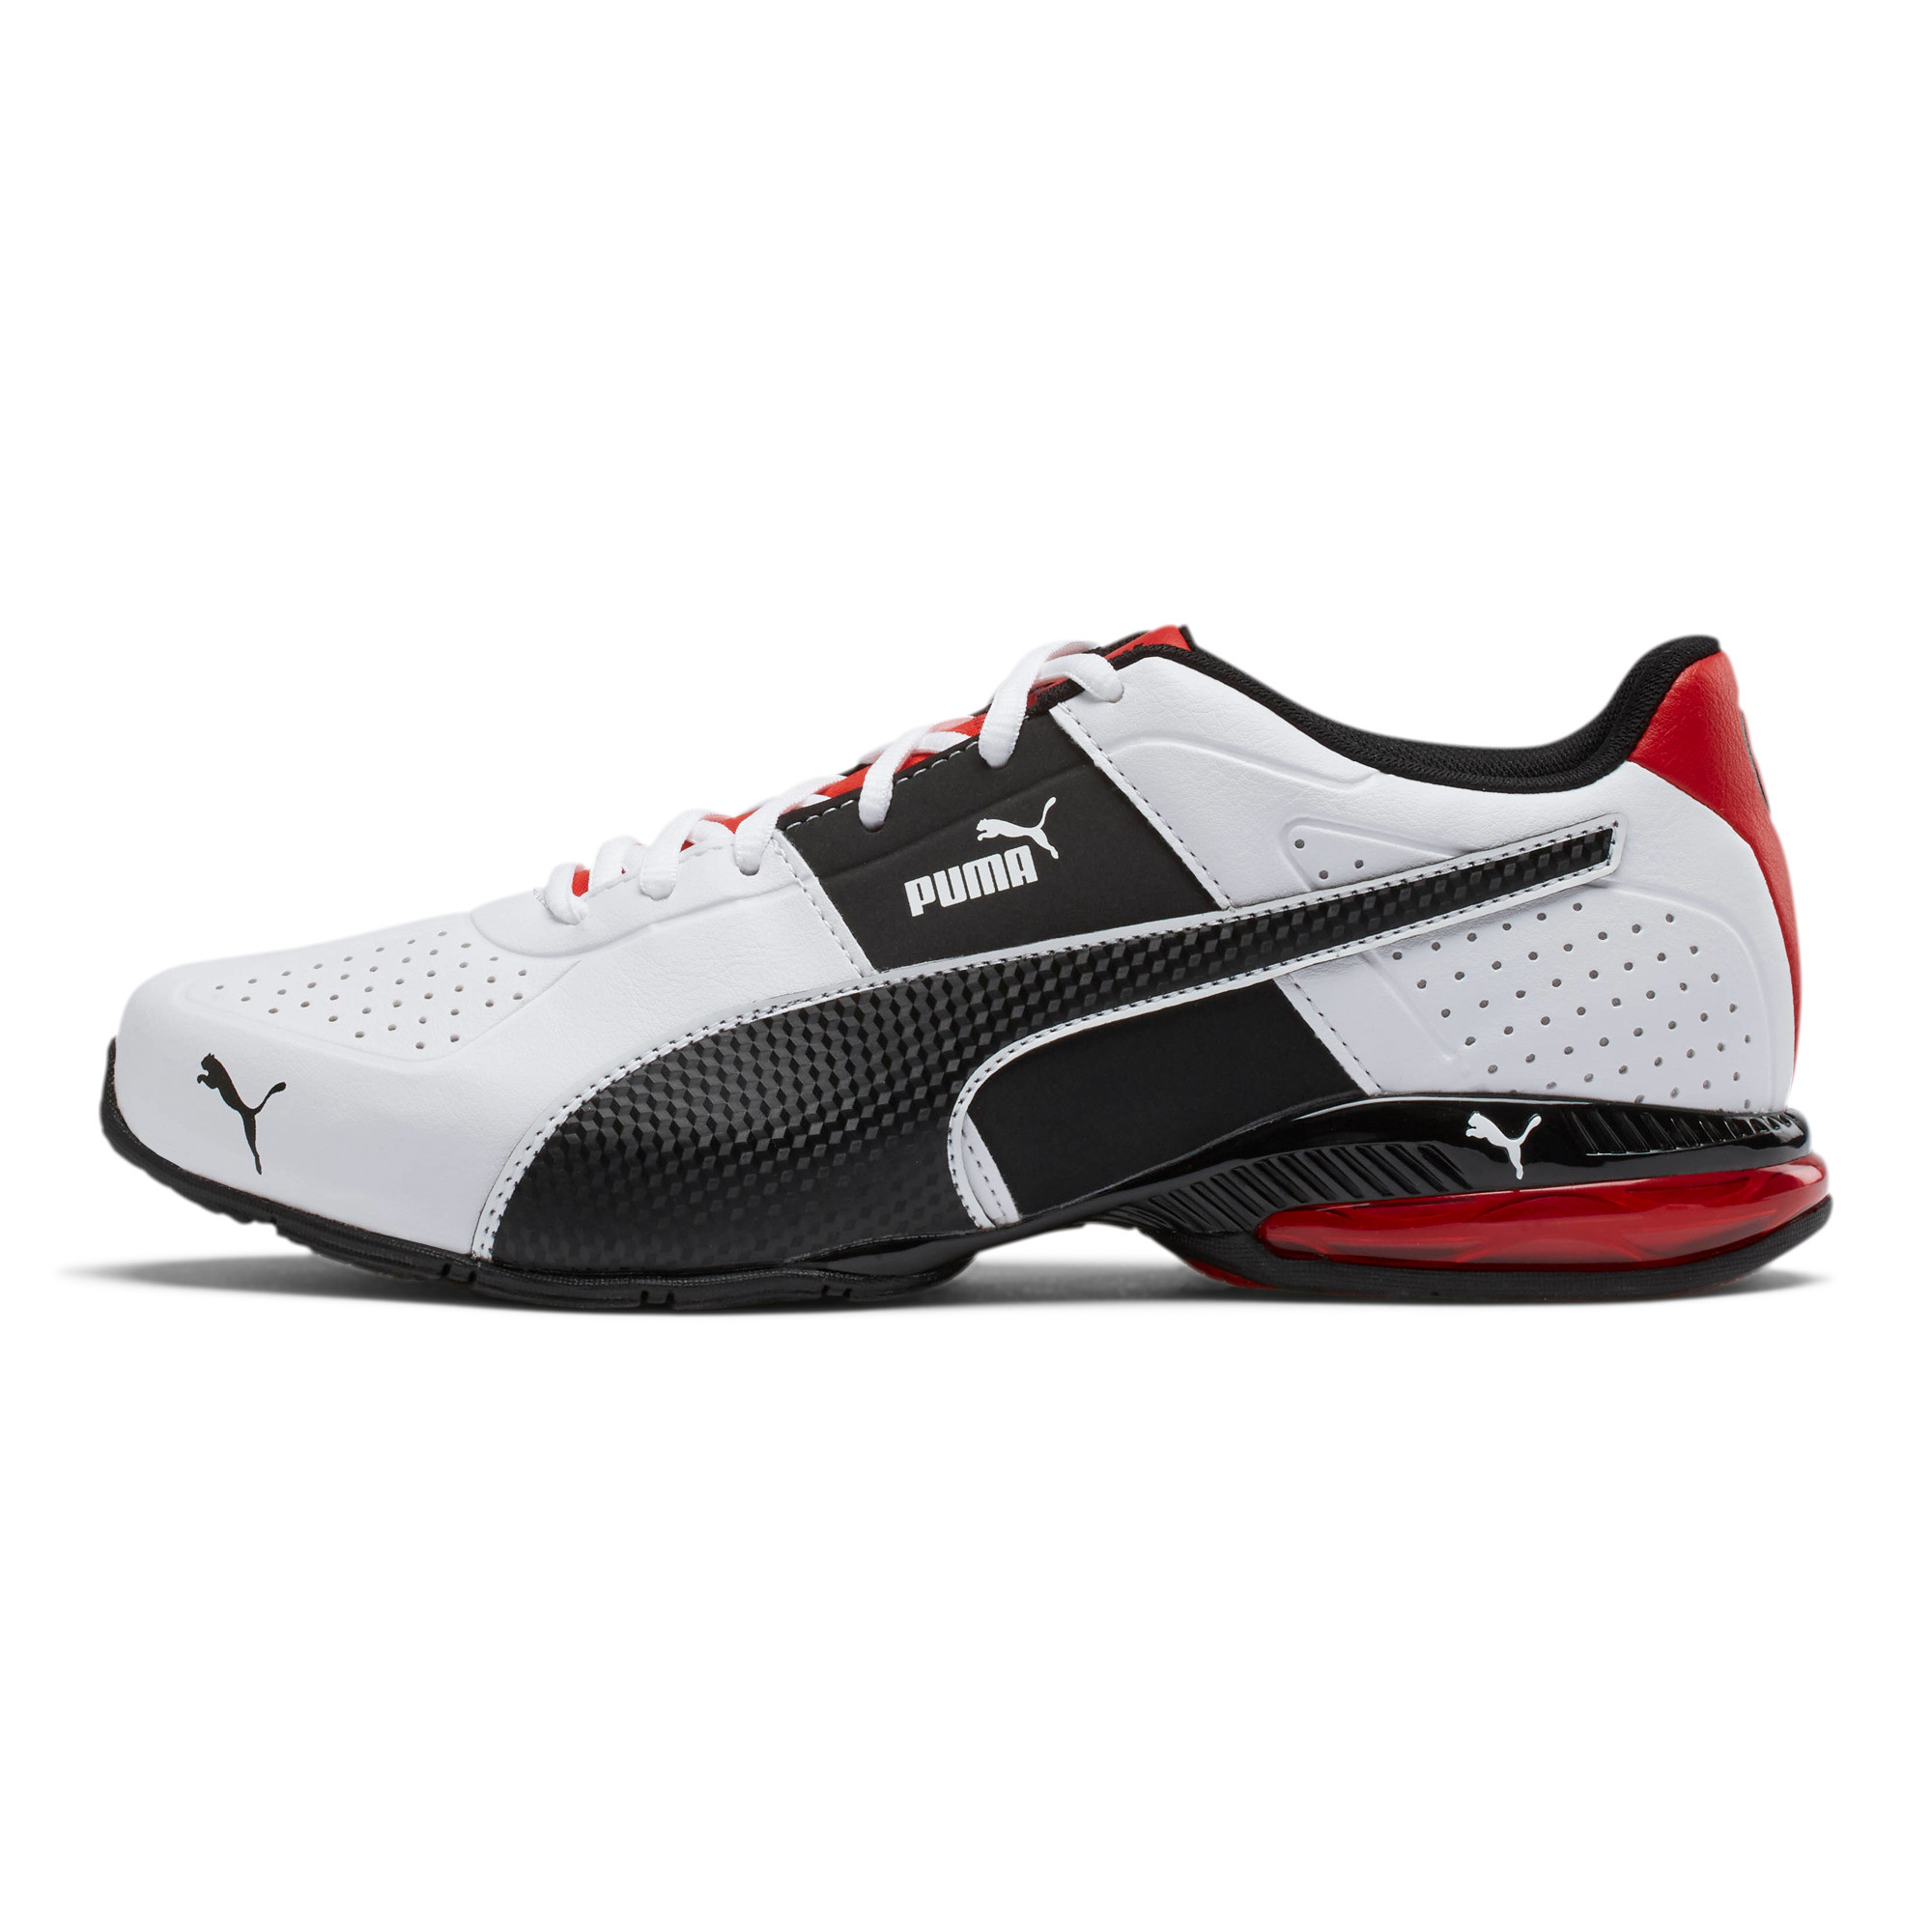 PUMA-CELL-Surin-2-FM-Men-039-s-Running-Shoes-Men-Shoe-Running thumbnail 13